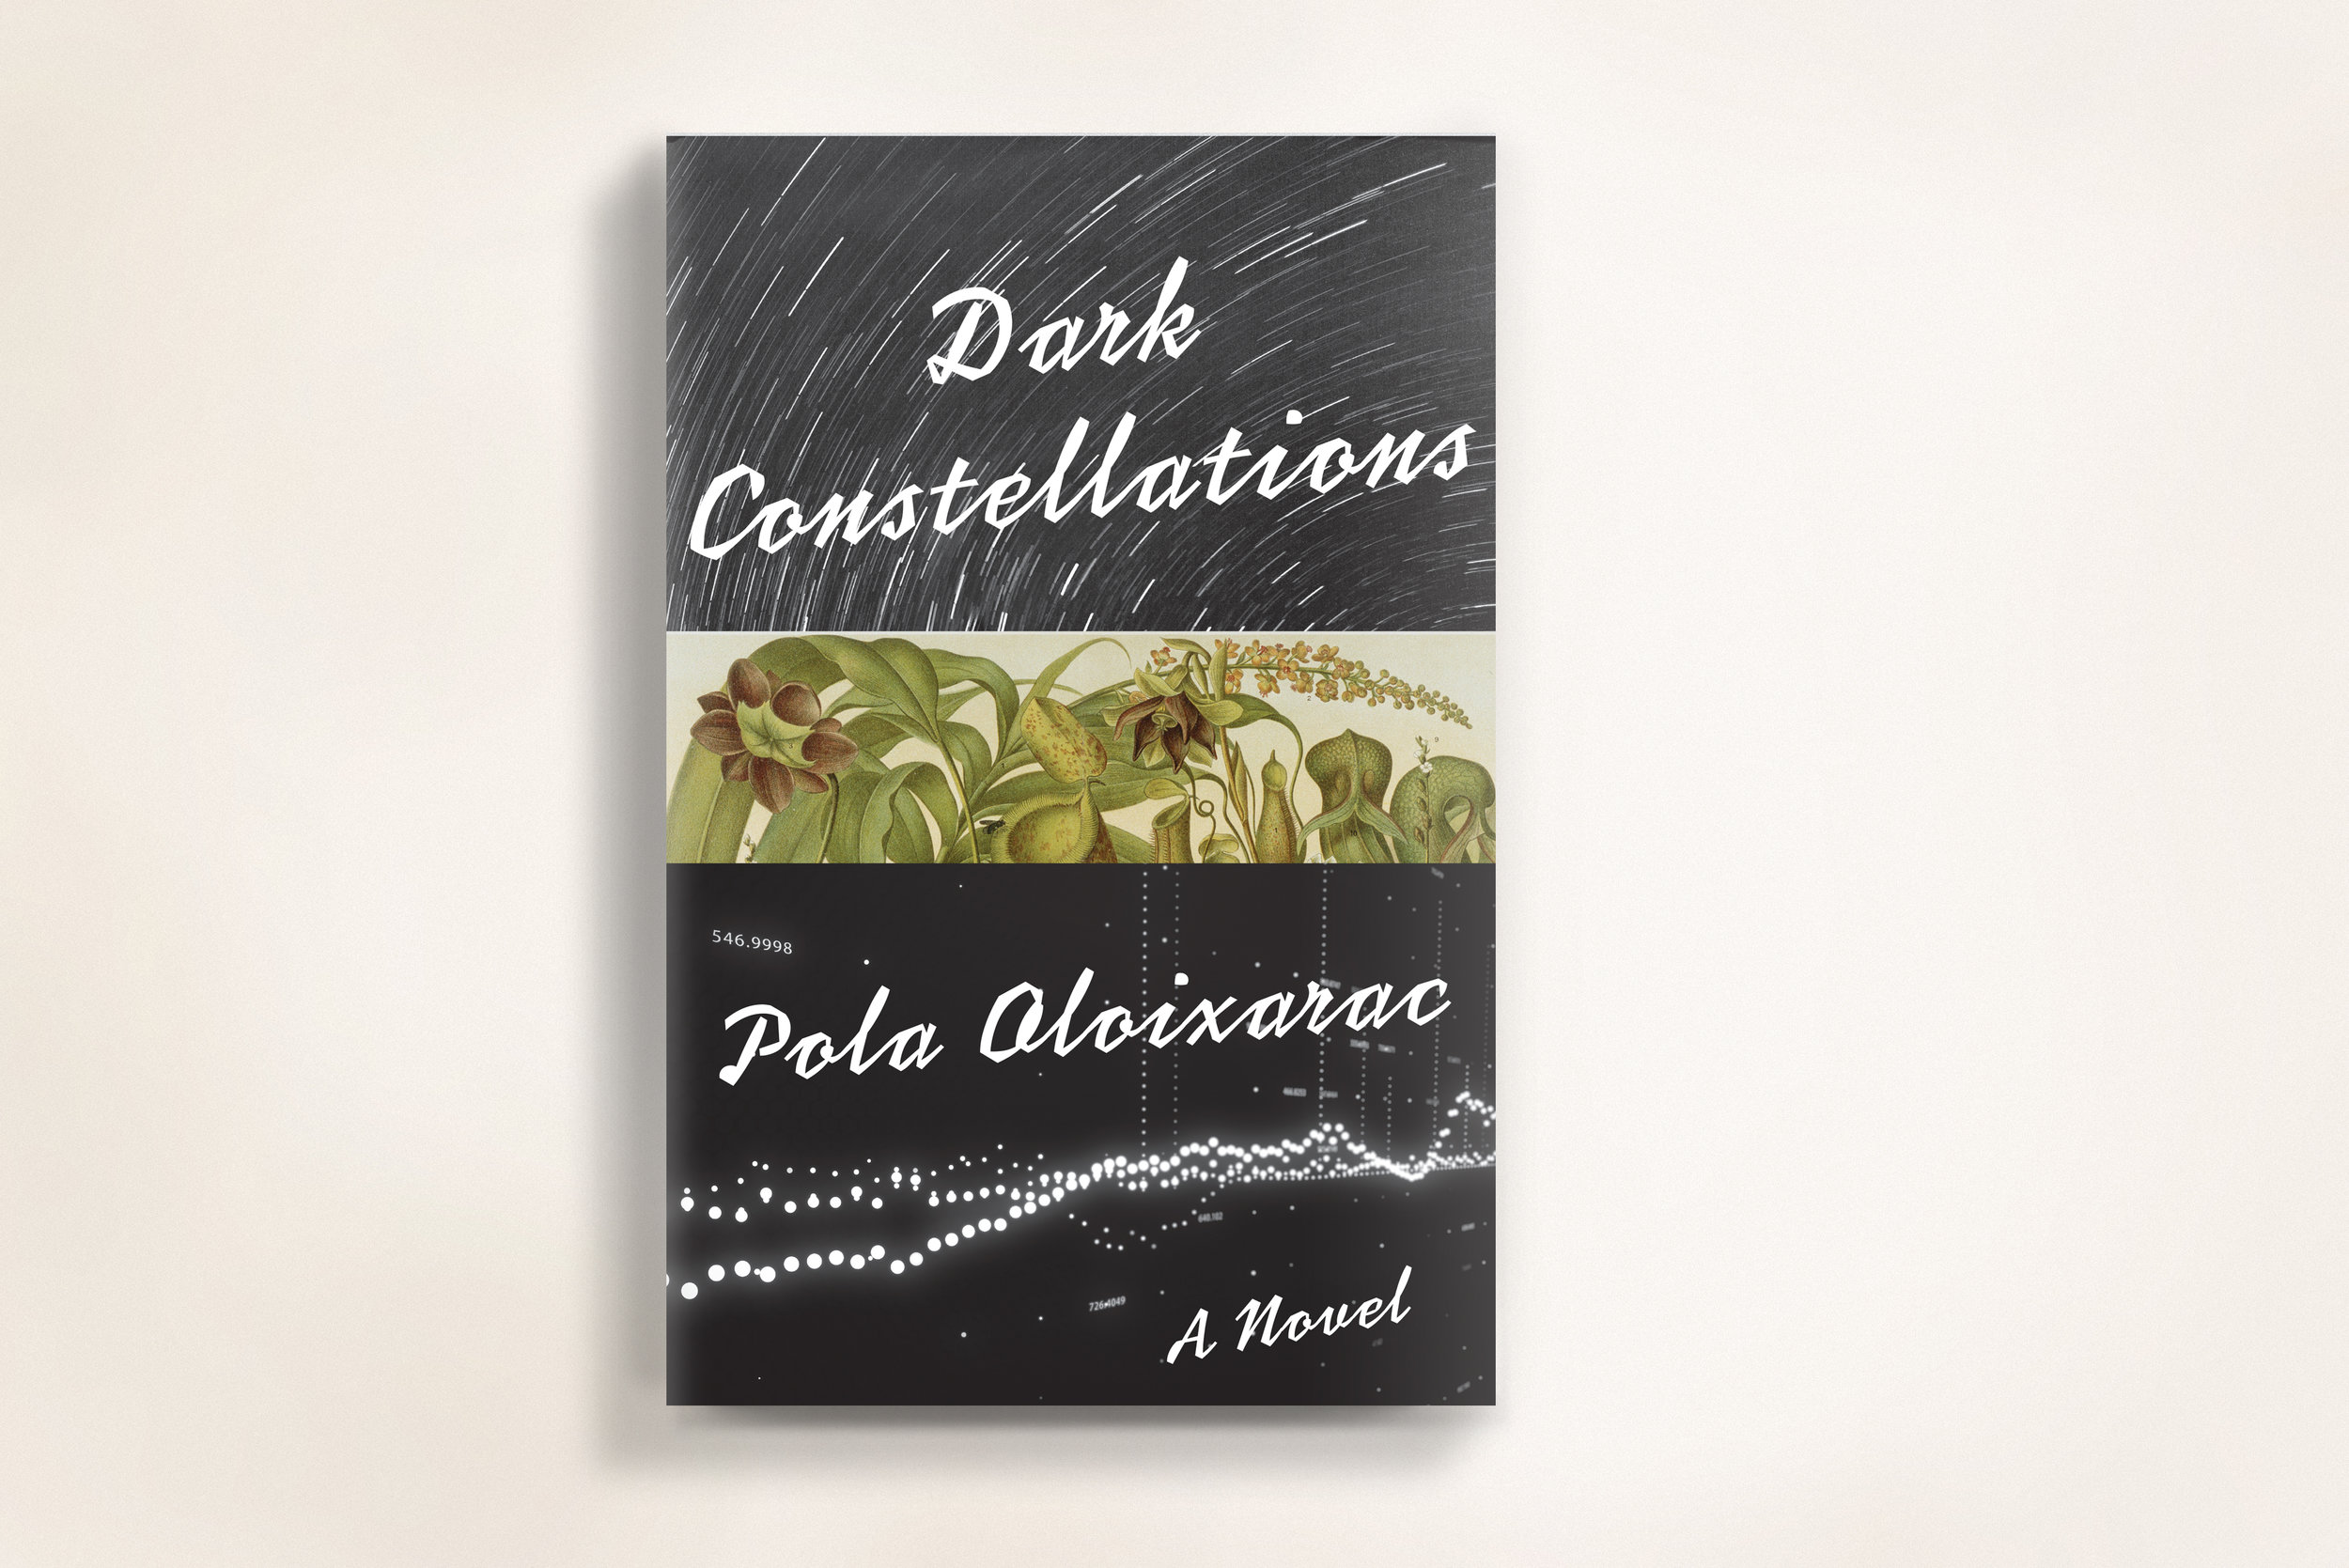 Dark_Constellations_2.jpg